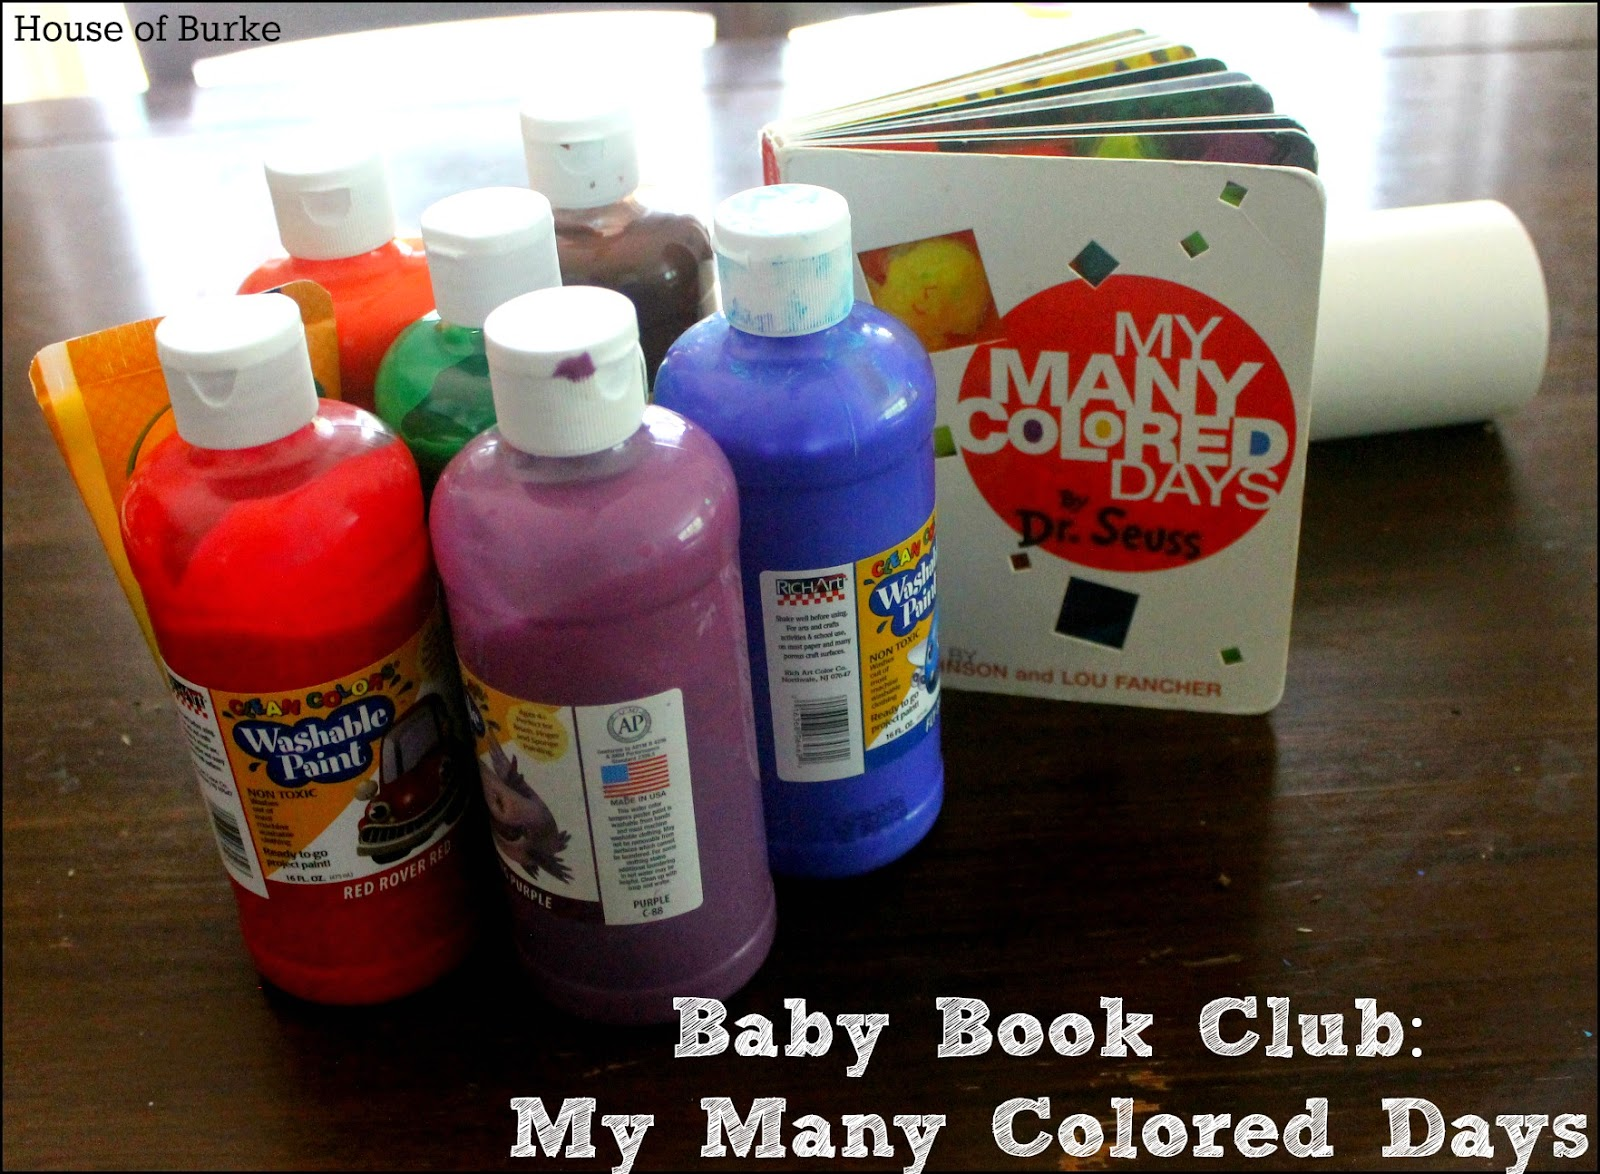 House of Burke: Baby Book Club: My Many Colored Days